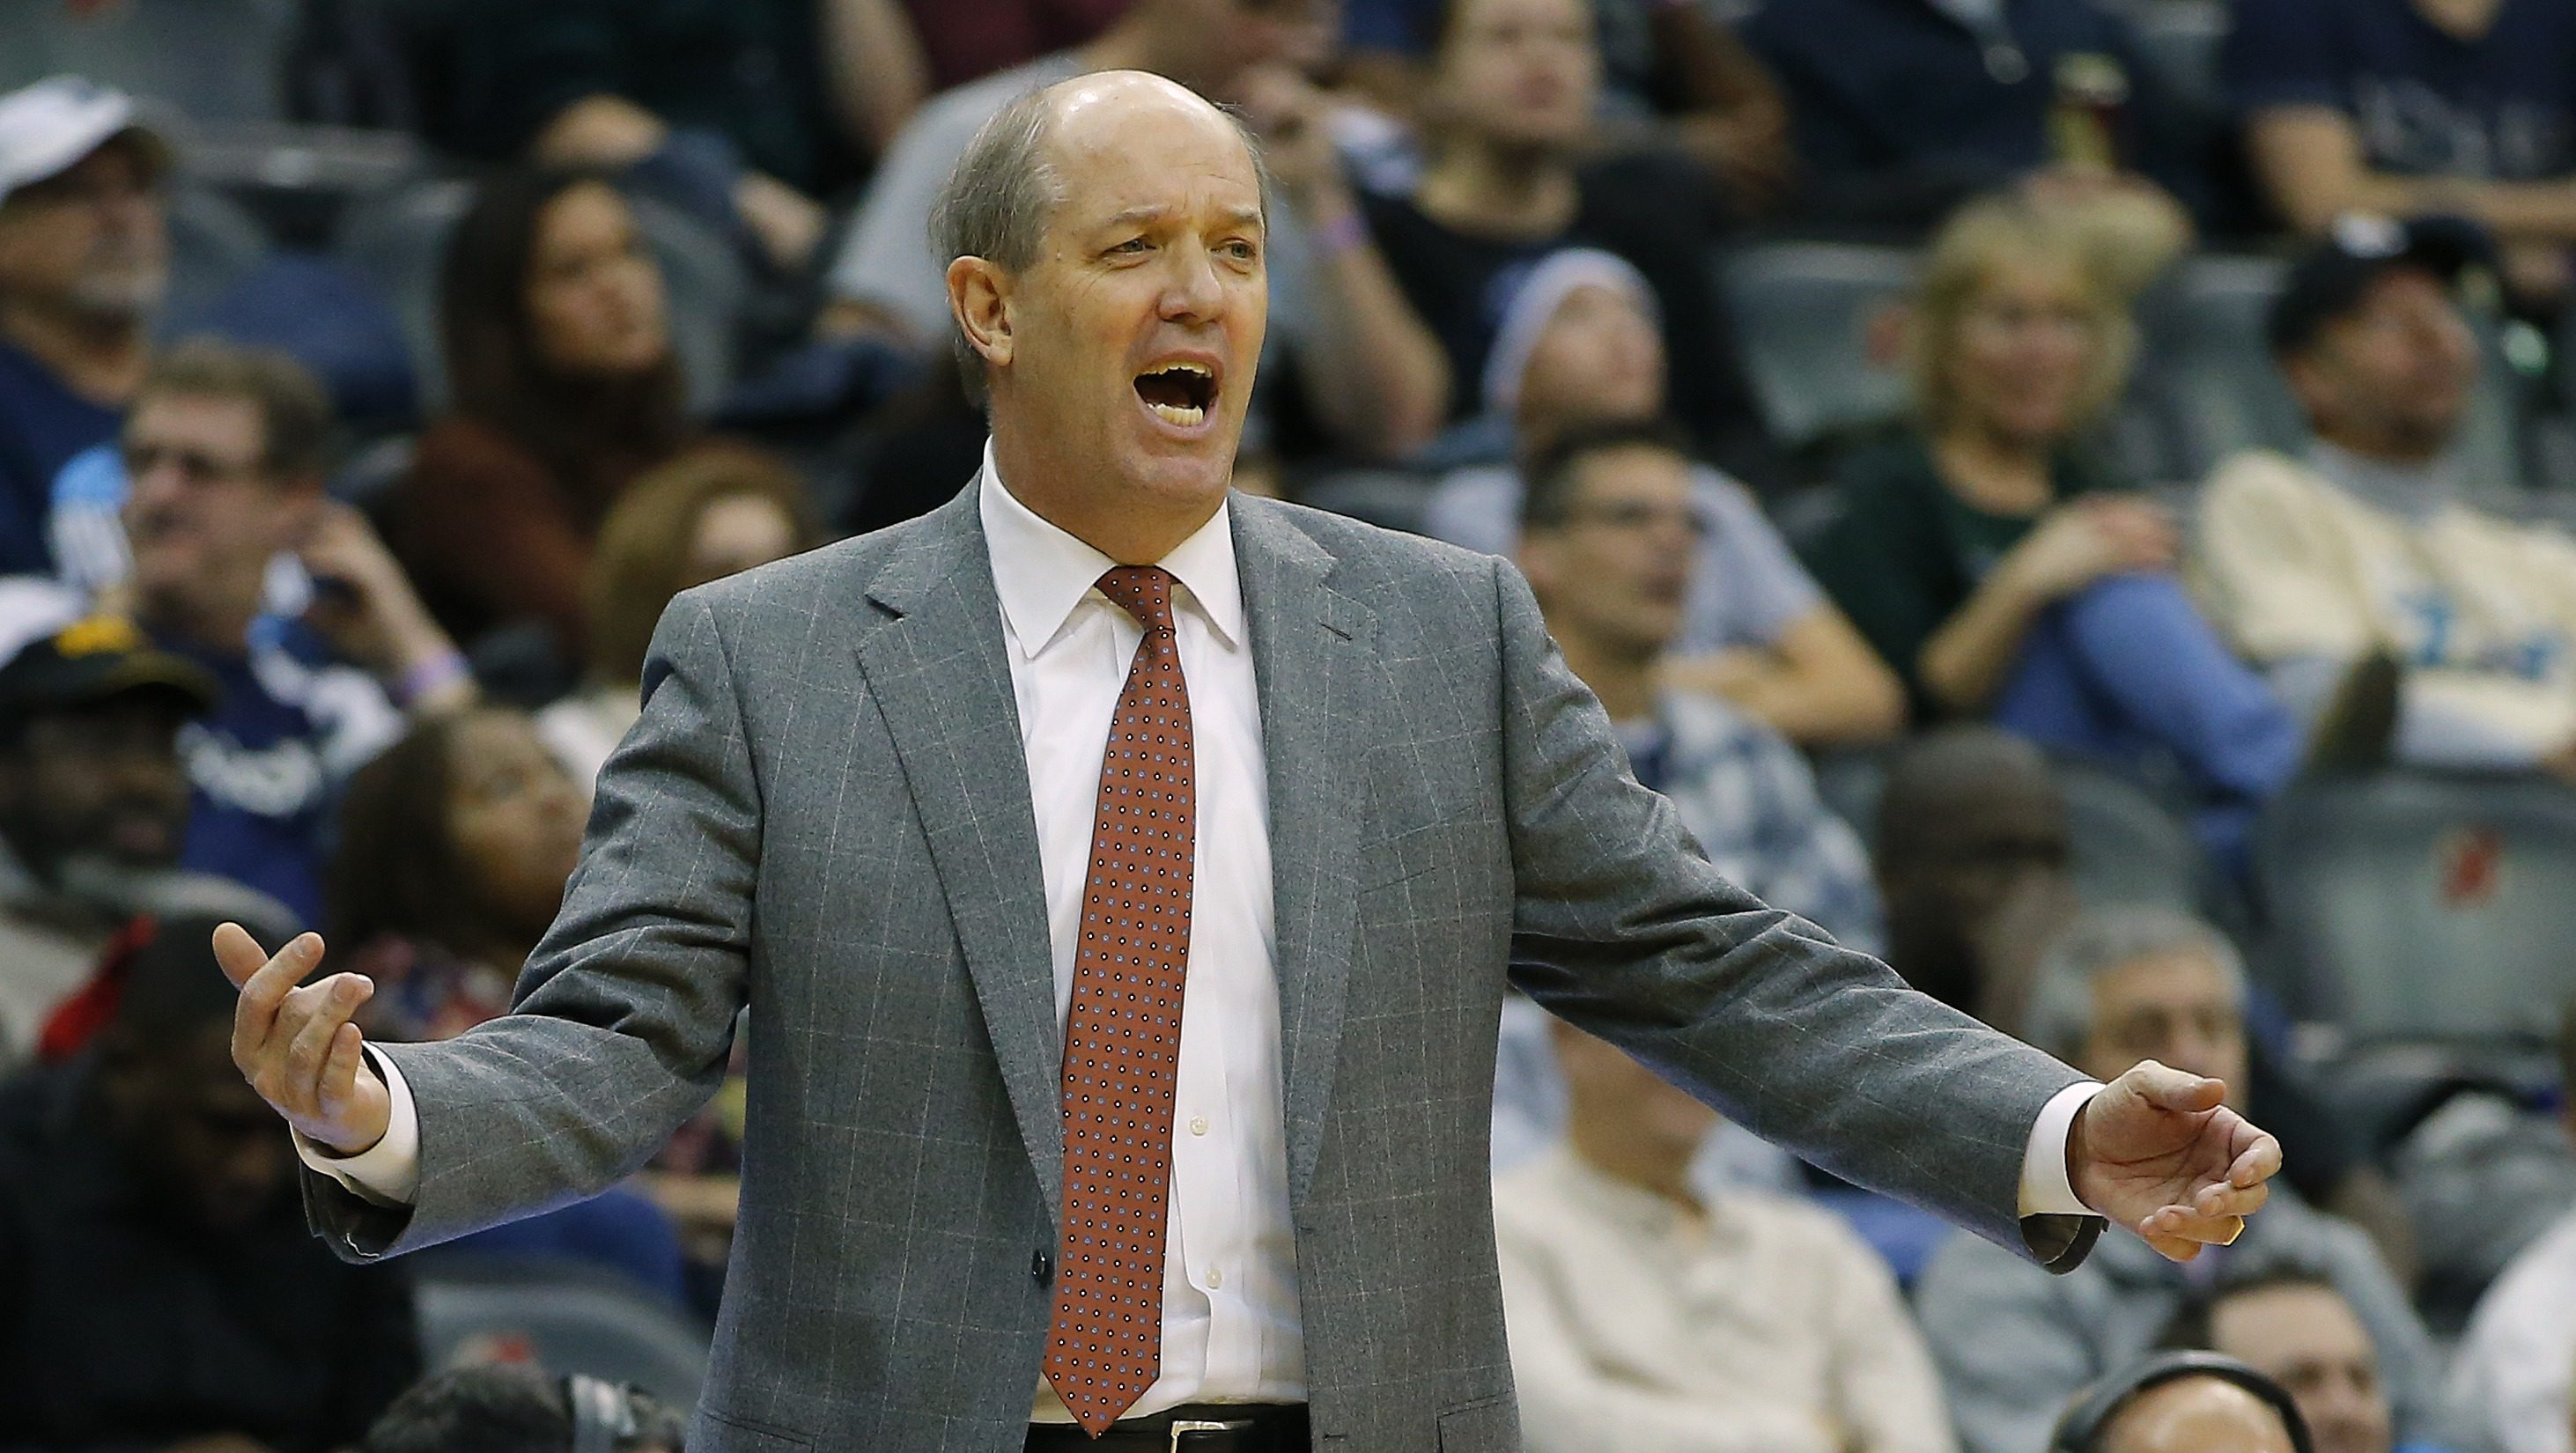 NEWARK, NJ - DECEMBER 10: Head coach Kevin Stallings of the Pittsburgh Panthers yells to his team against the Penn State Nittany Lions during the second half of a college basketball game at Prudential Center on December 10, 2016 in Newark, New Jersey. Pitt defeated Penn State 81-73. (Photo by Rich Schultz/Getty Images)